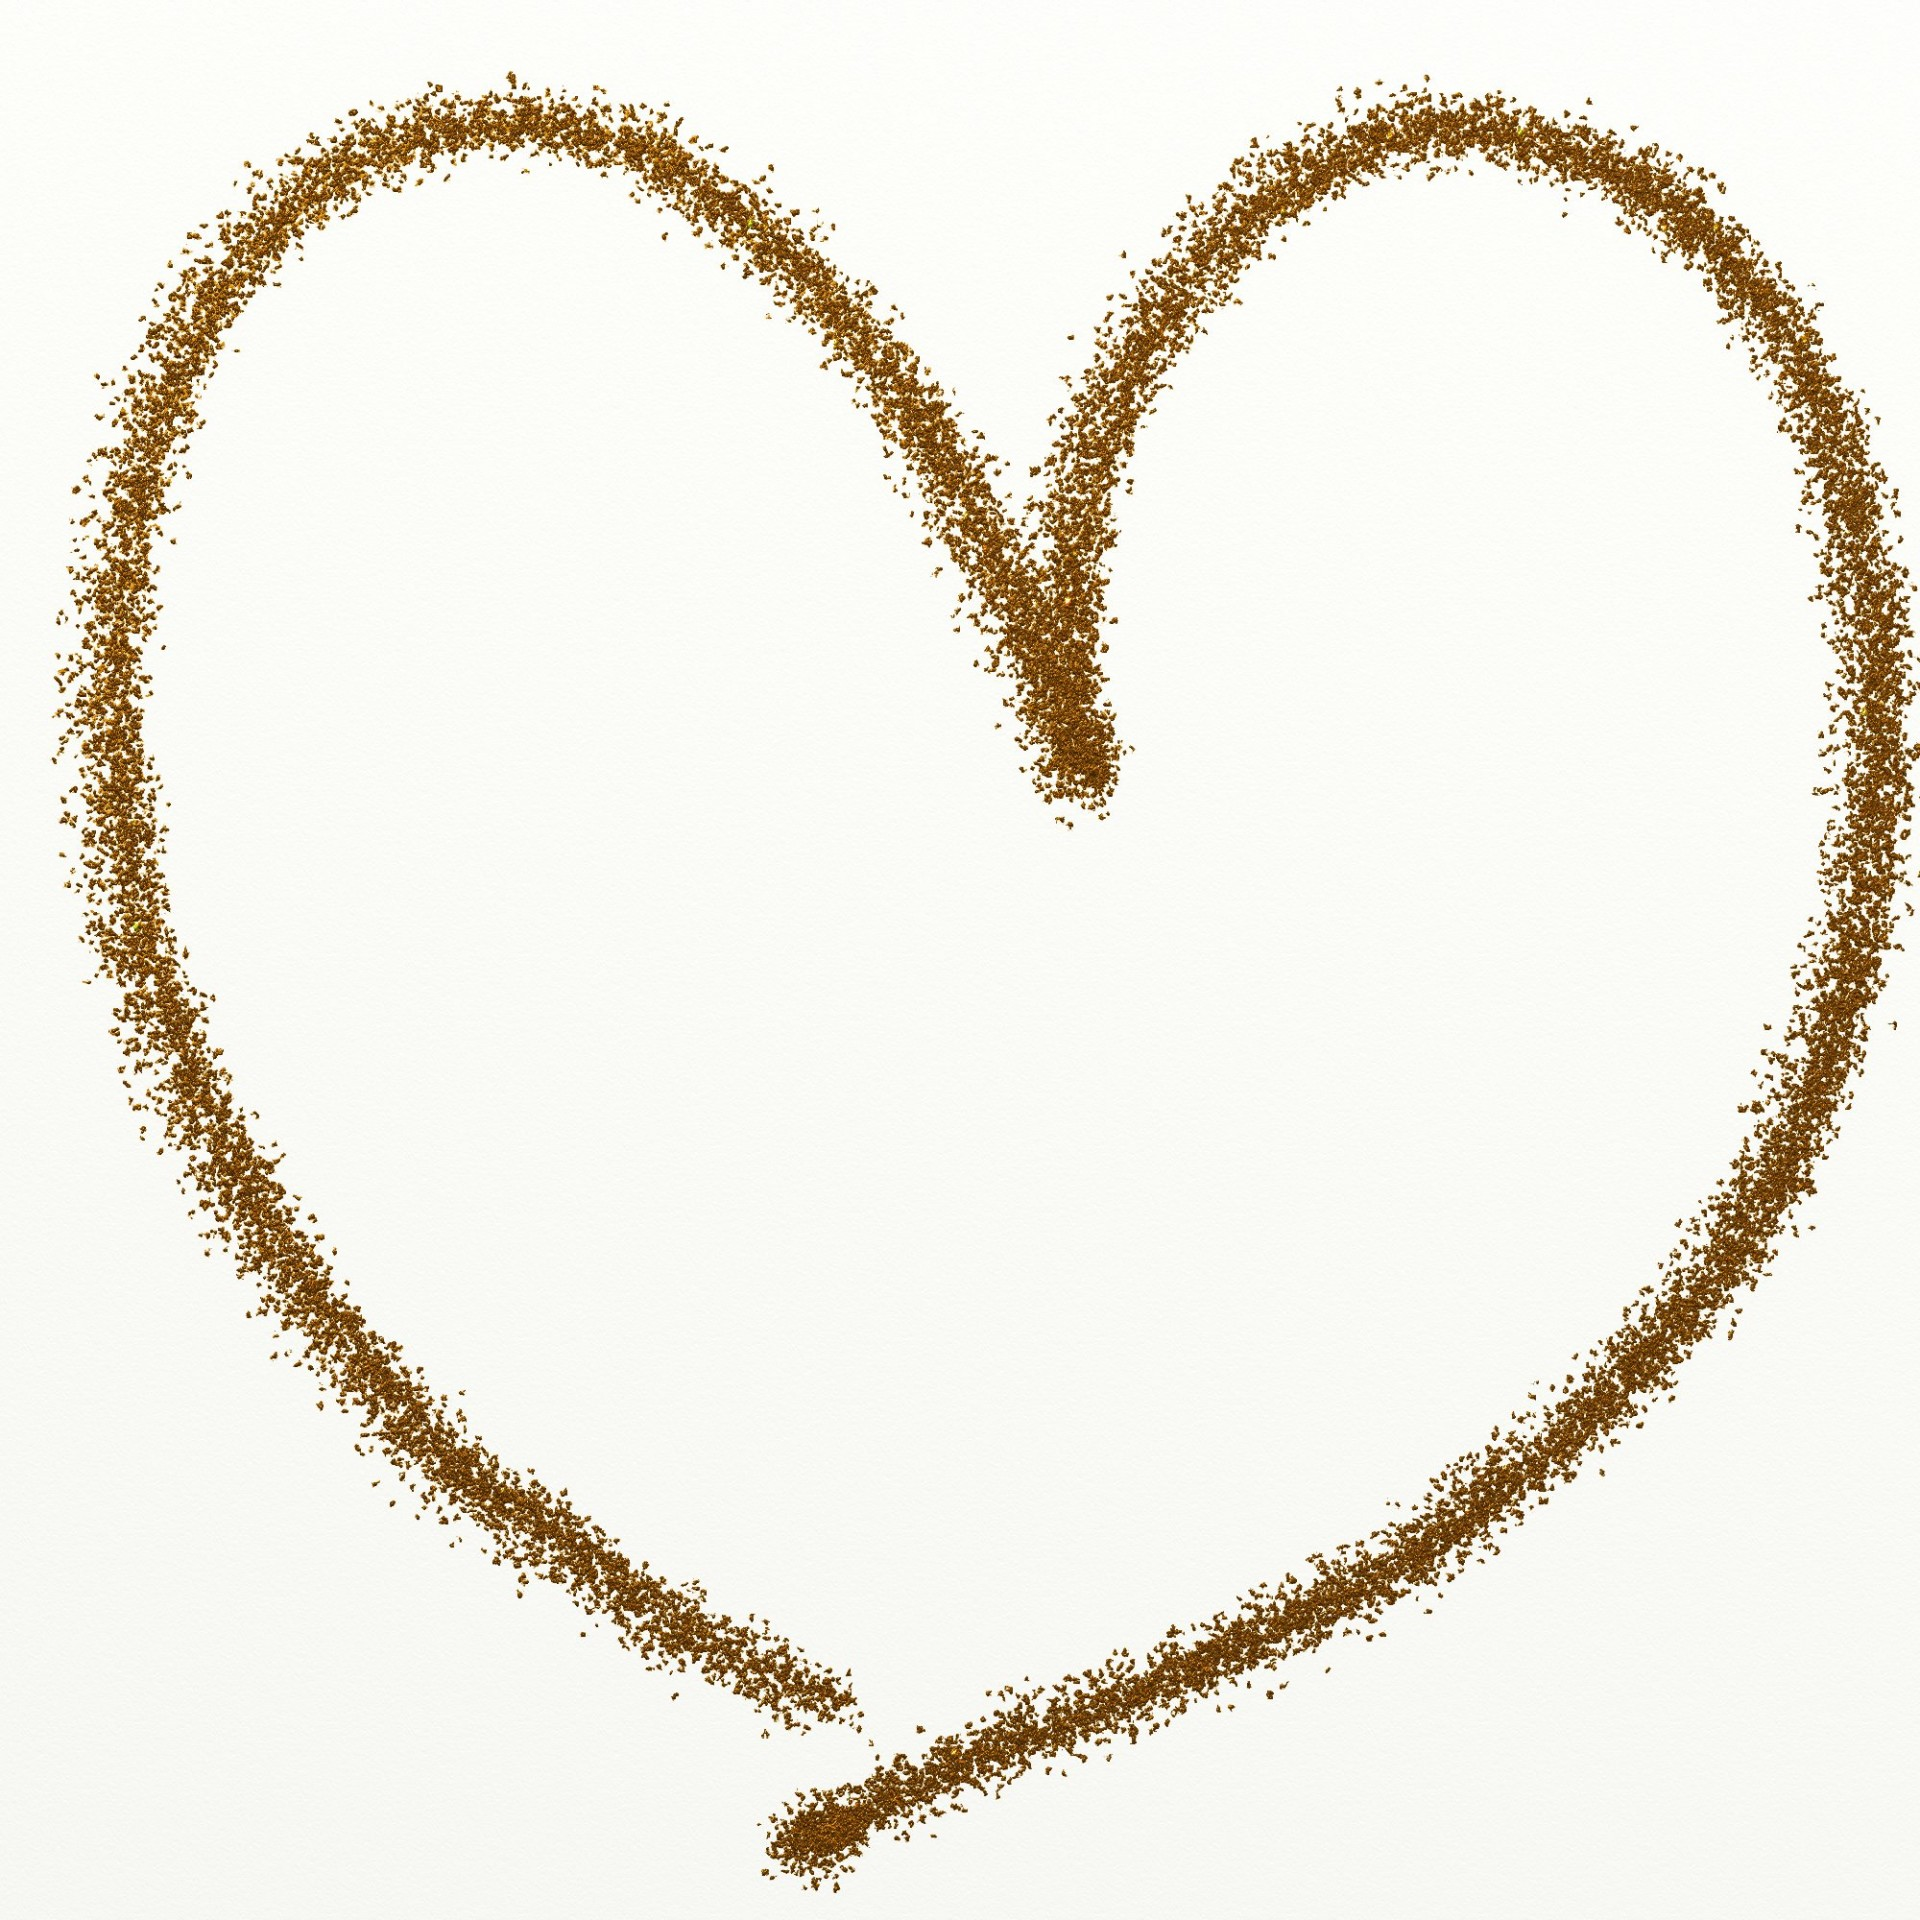 Glitter clipart. Gold heart free stock